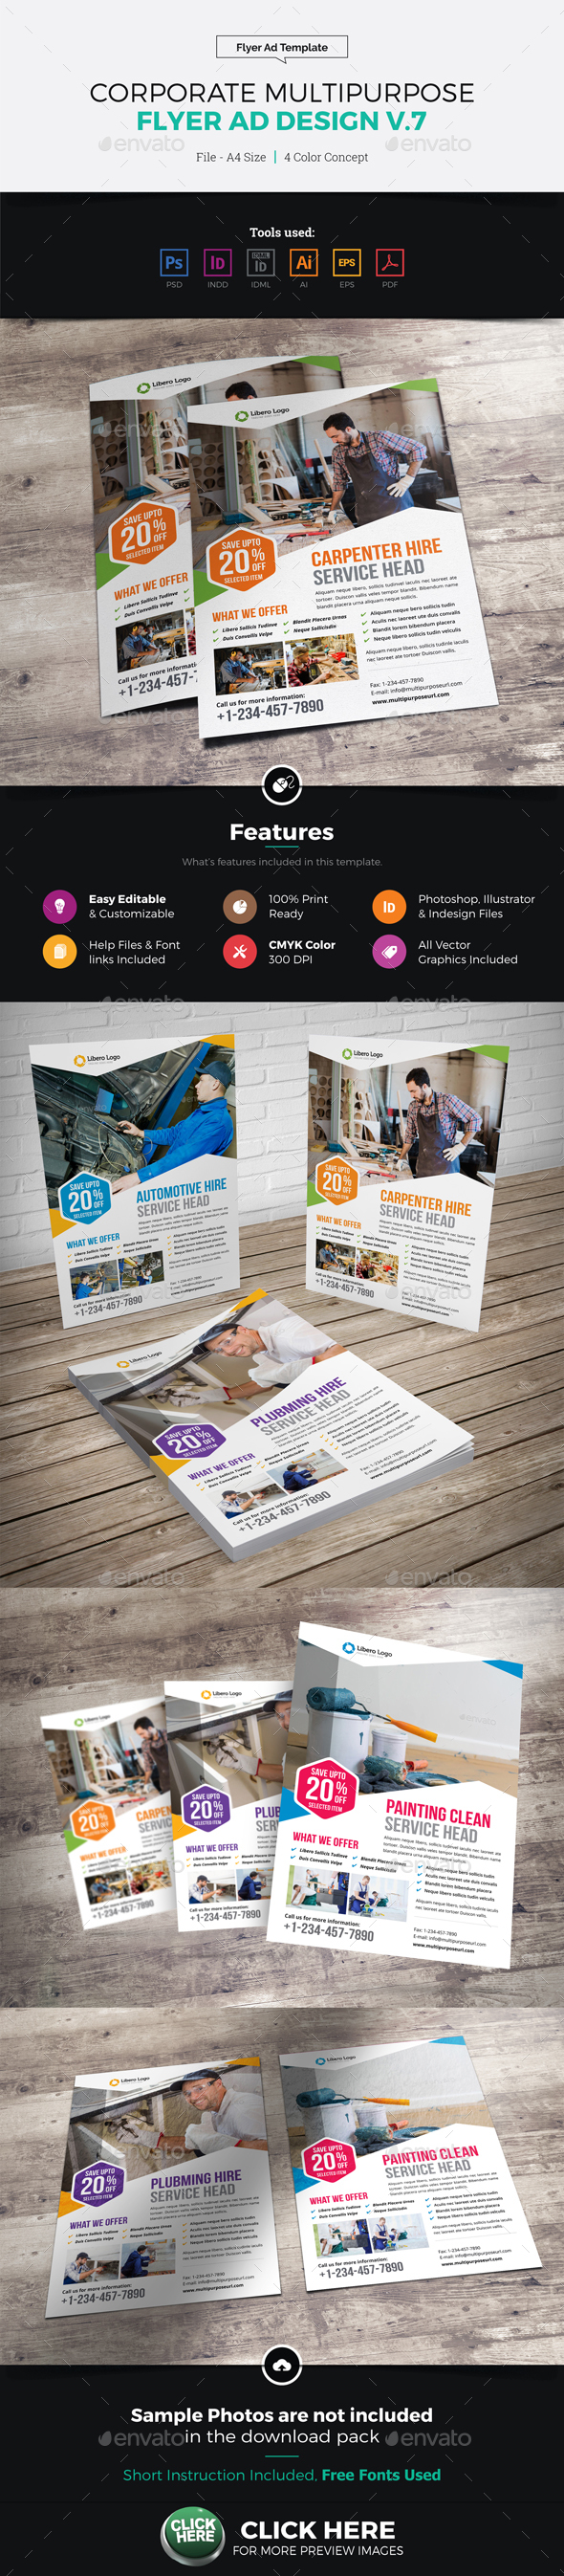 Corporate Multipurpose Flyer Ad Design v7 - Corporate Flyers